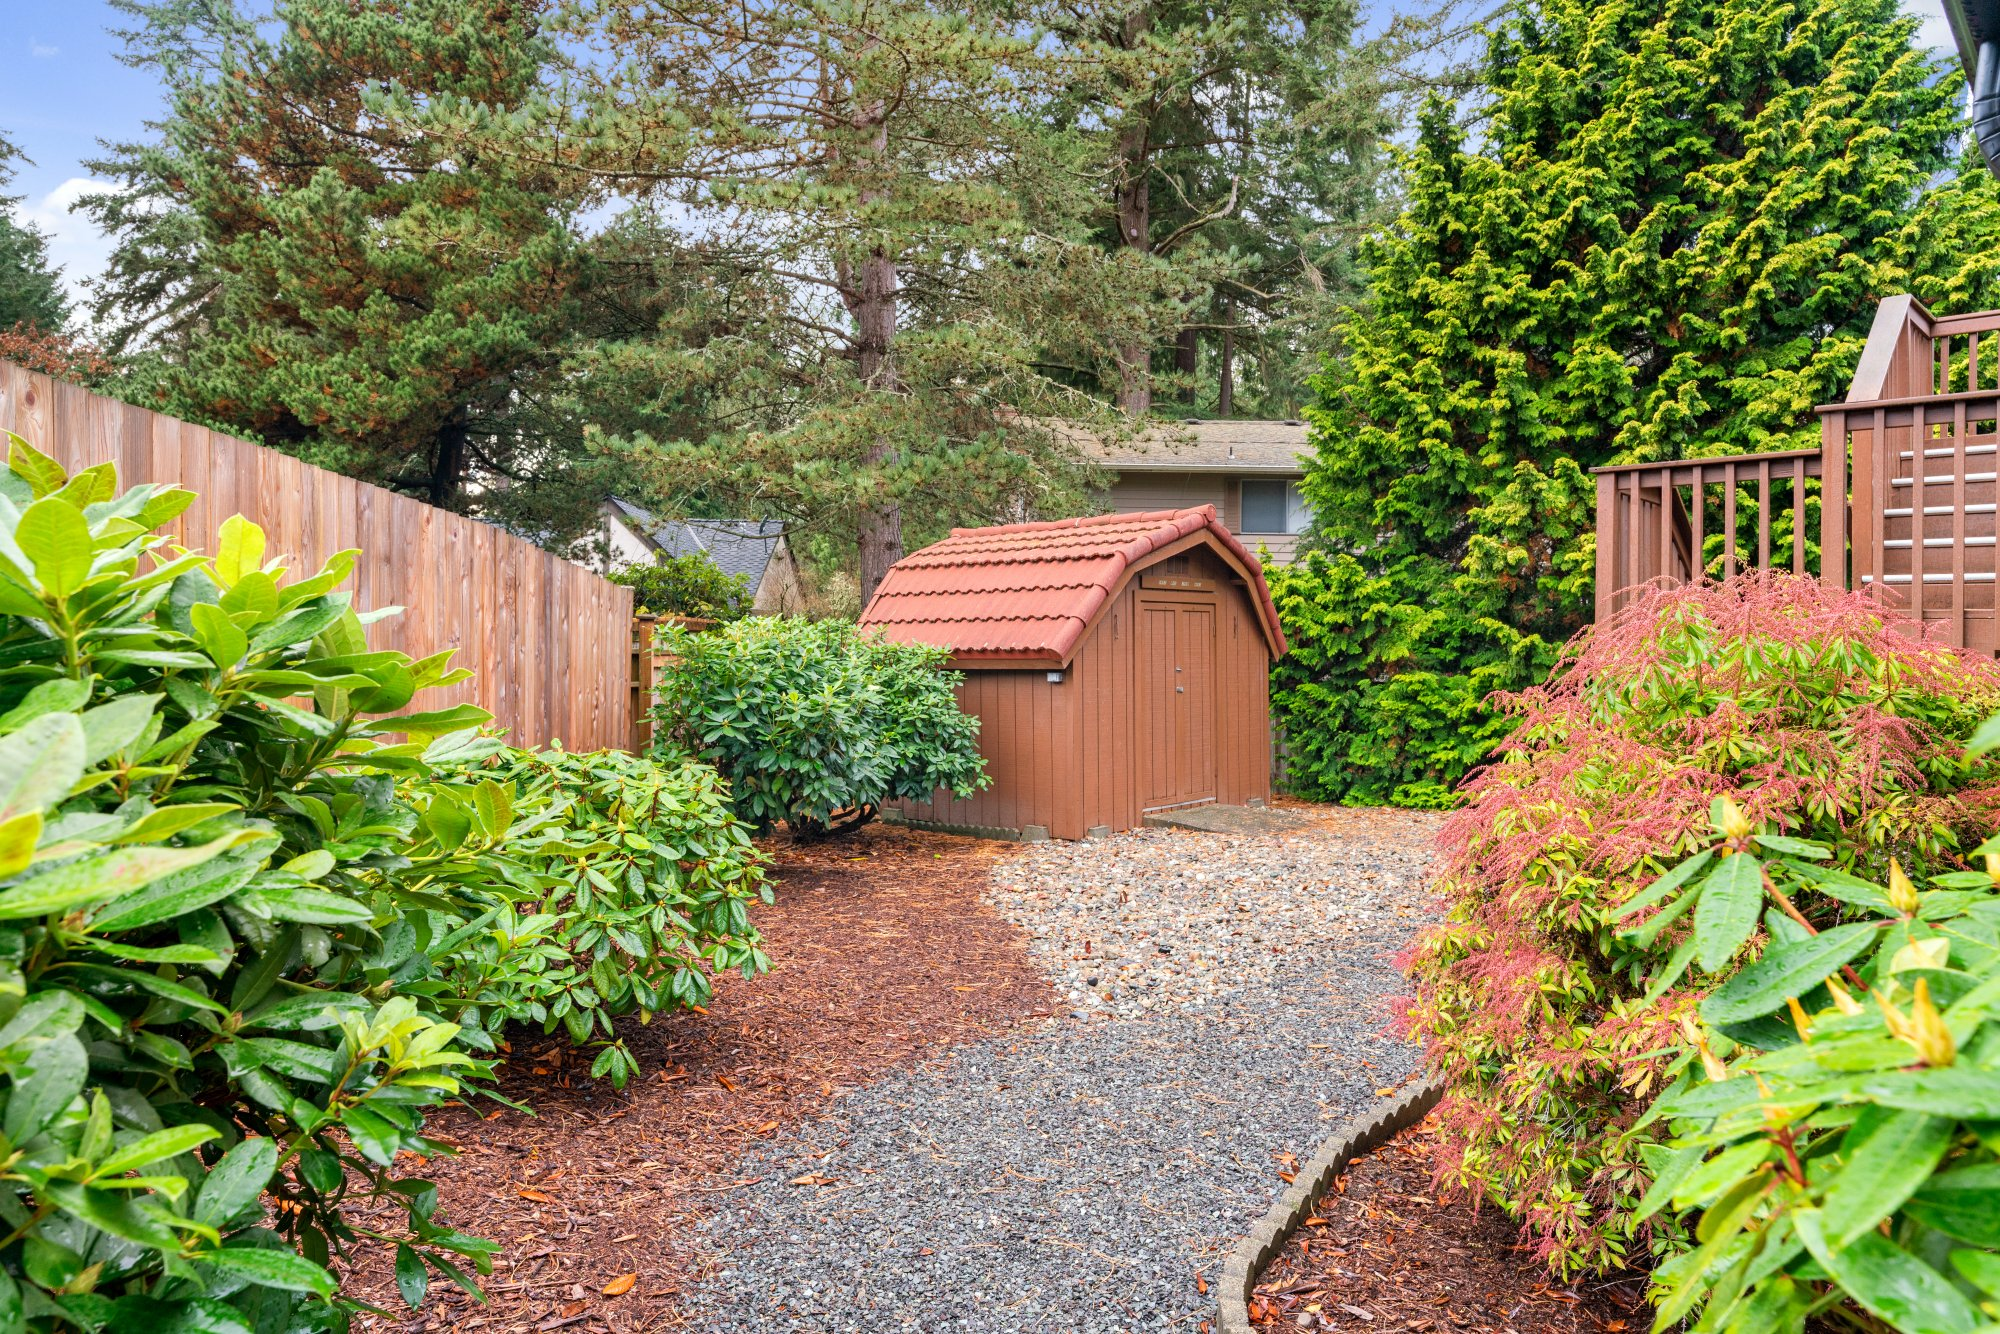 Terry Vehrs_033-22829108thAvenueWest-Edmonds-WA-98020-SMALL